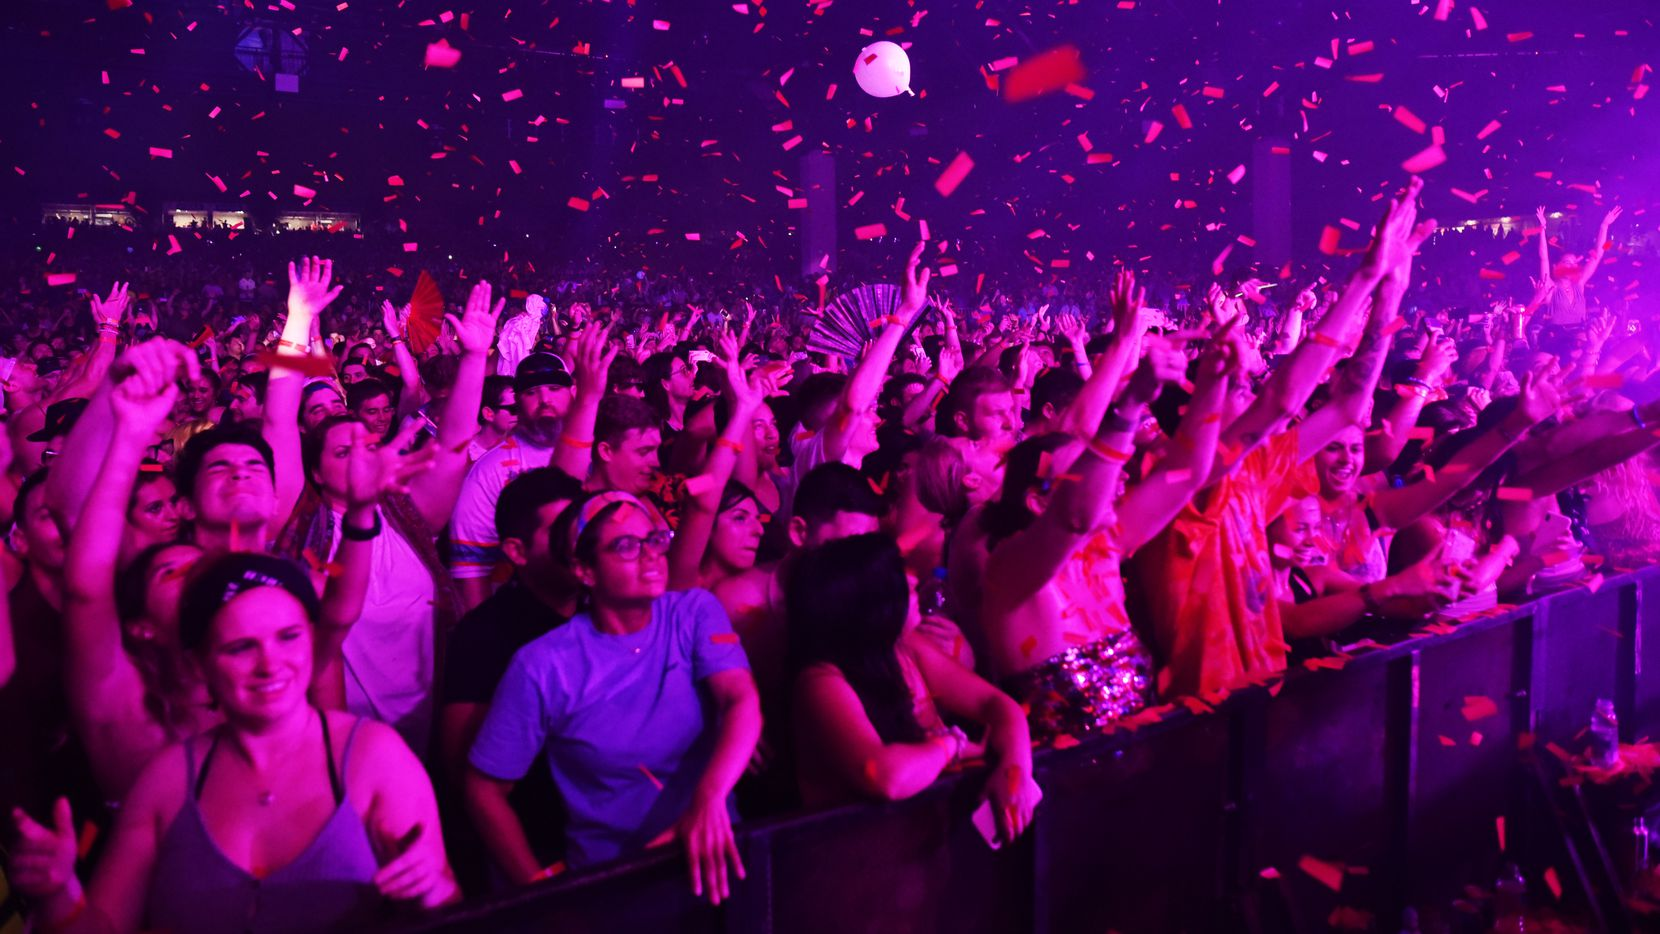 Fans enjoyed Odesza's performance at the Camp Nowhere concert tour at Dos Equis Pavilion in Dallas on June 22, 2019. The mini-festival returns to the venue on June 20.